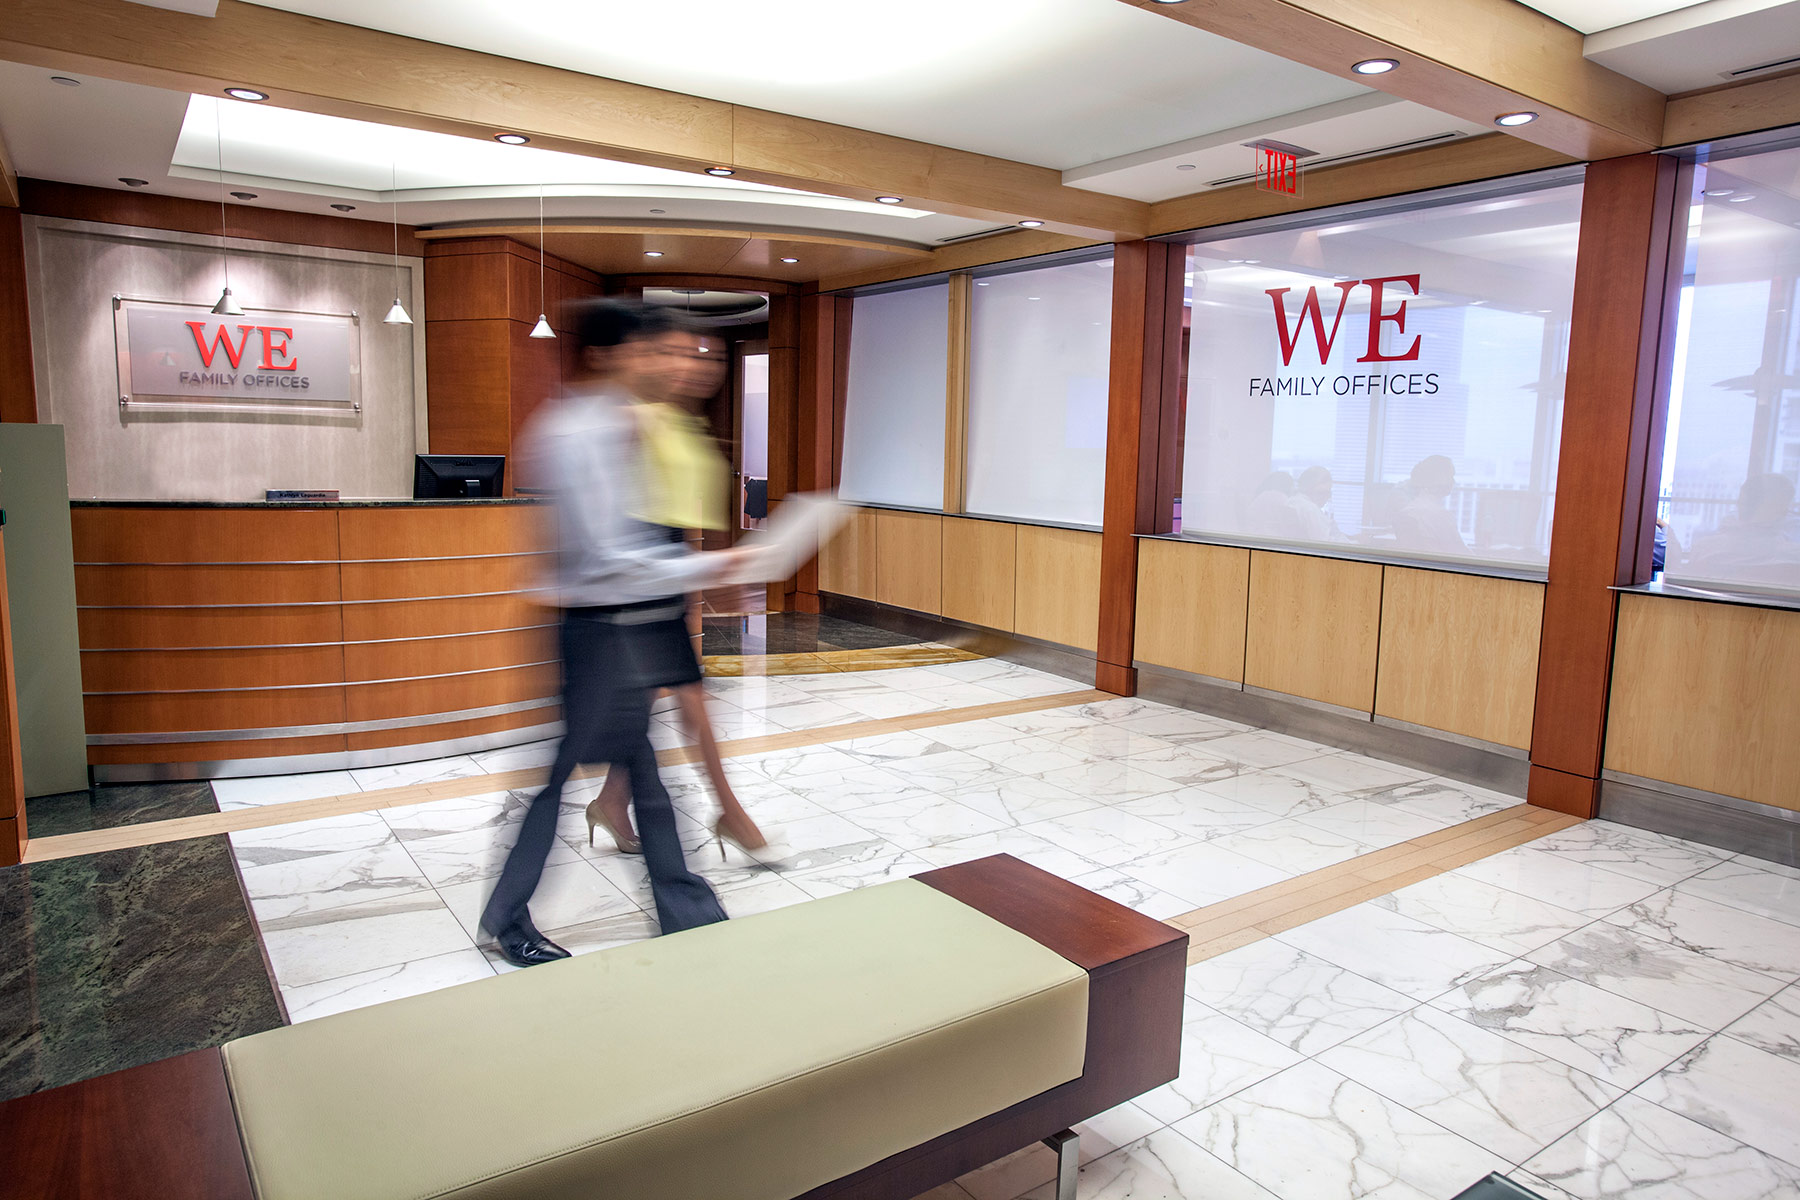 We-Family-Offices-Lobby